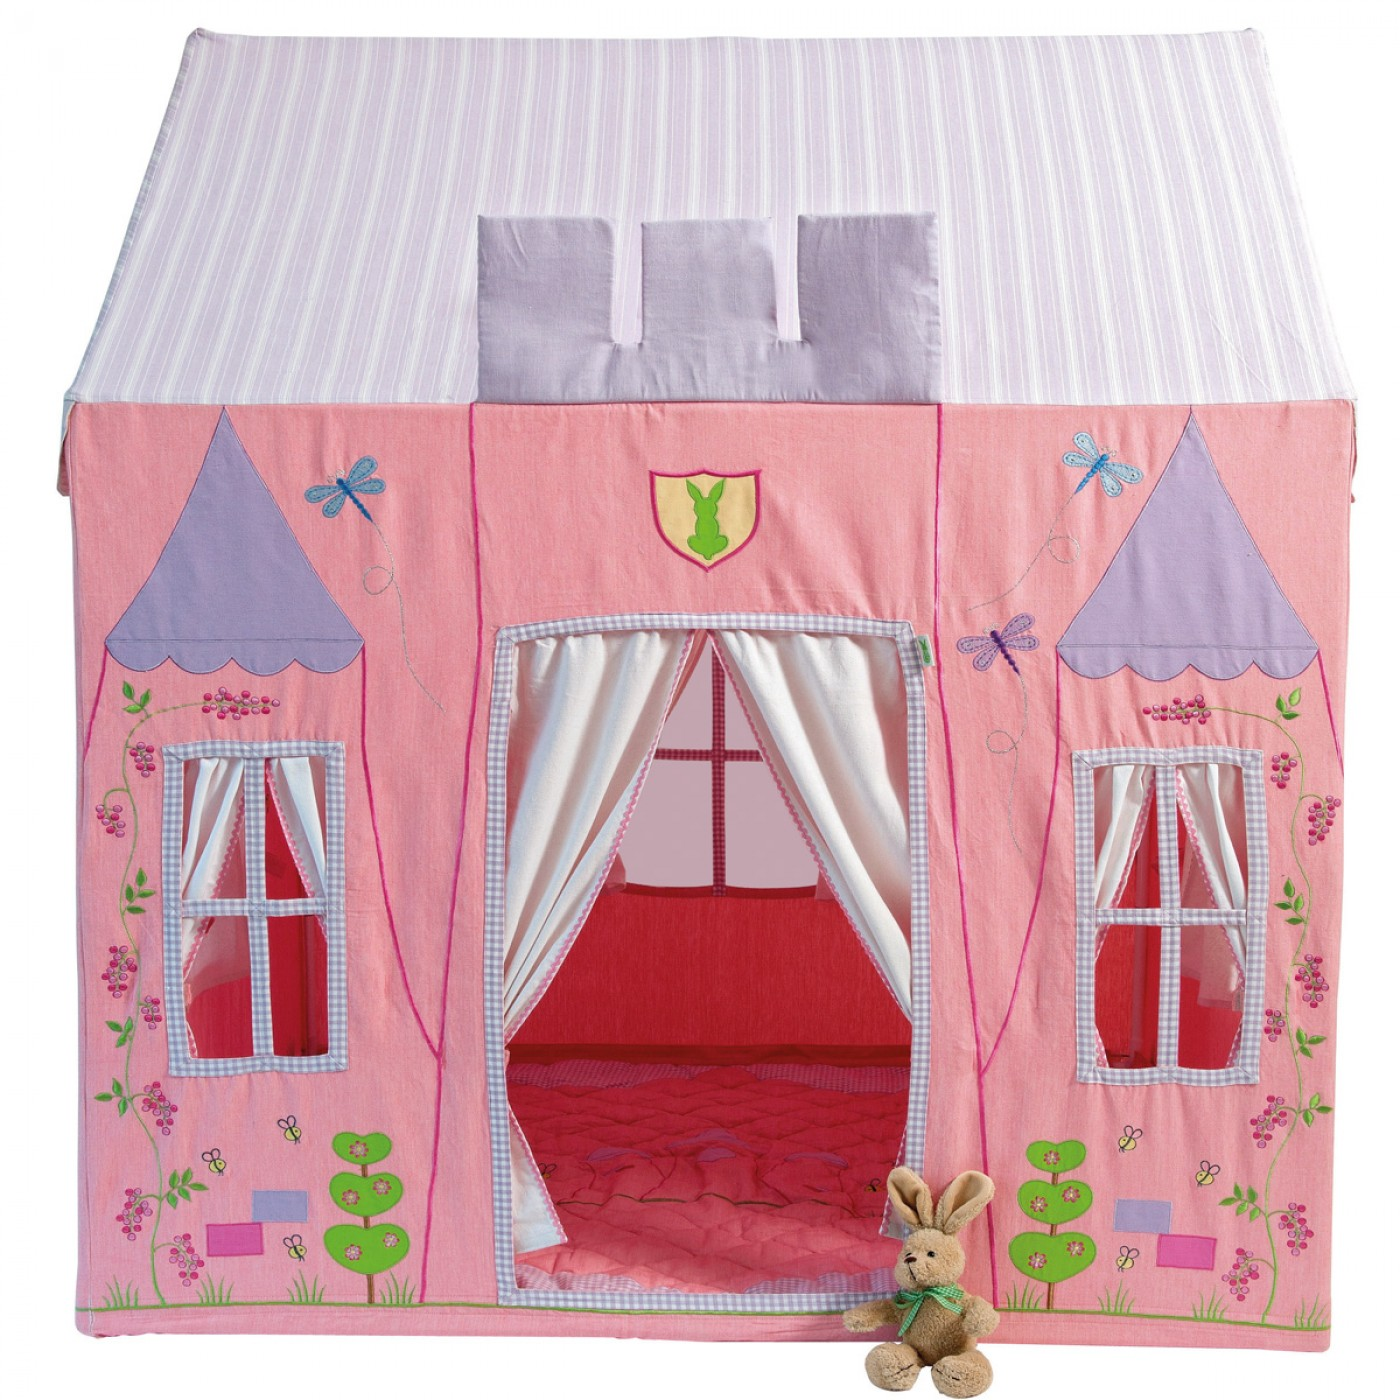 Fabric Princess Castle Playhouse Thumbnail 7